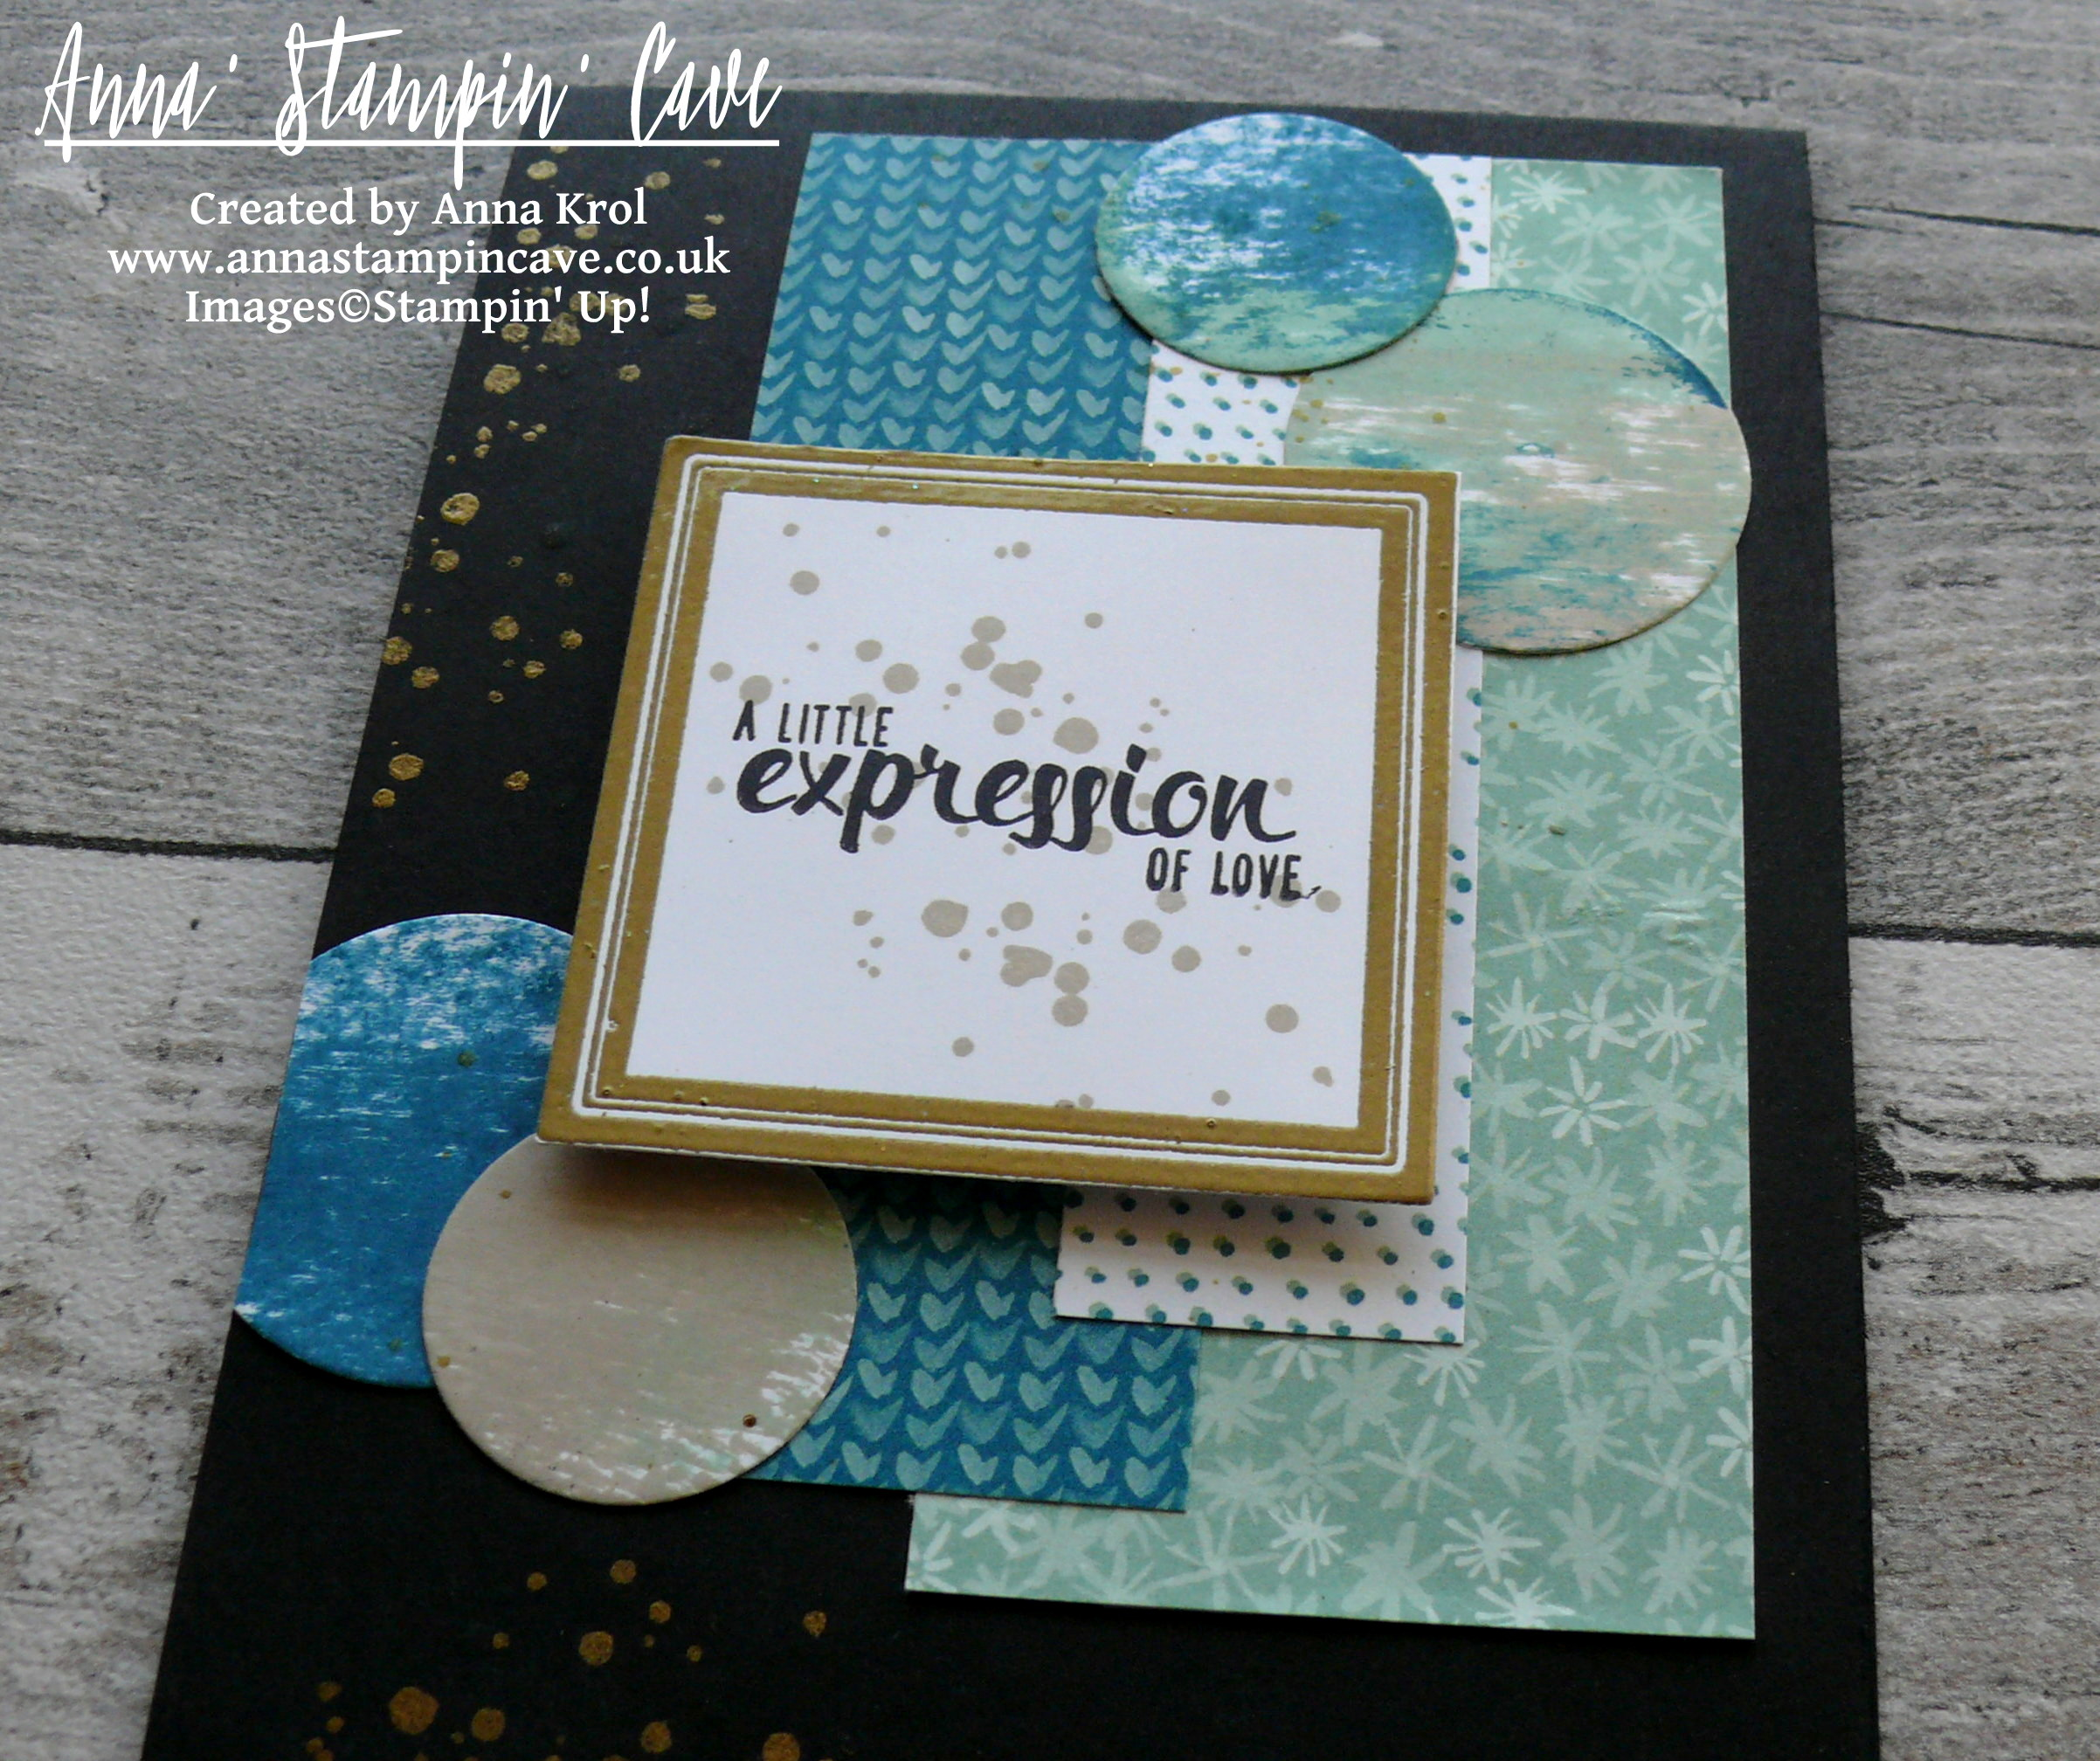 Anna' Stampin' Cave - Stampin' Up! Painter's Palette - Blooms and Bliss DSP - A Little Expression Of Love Card